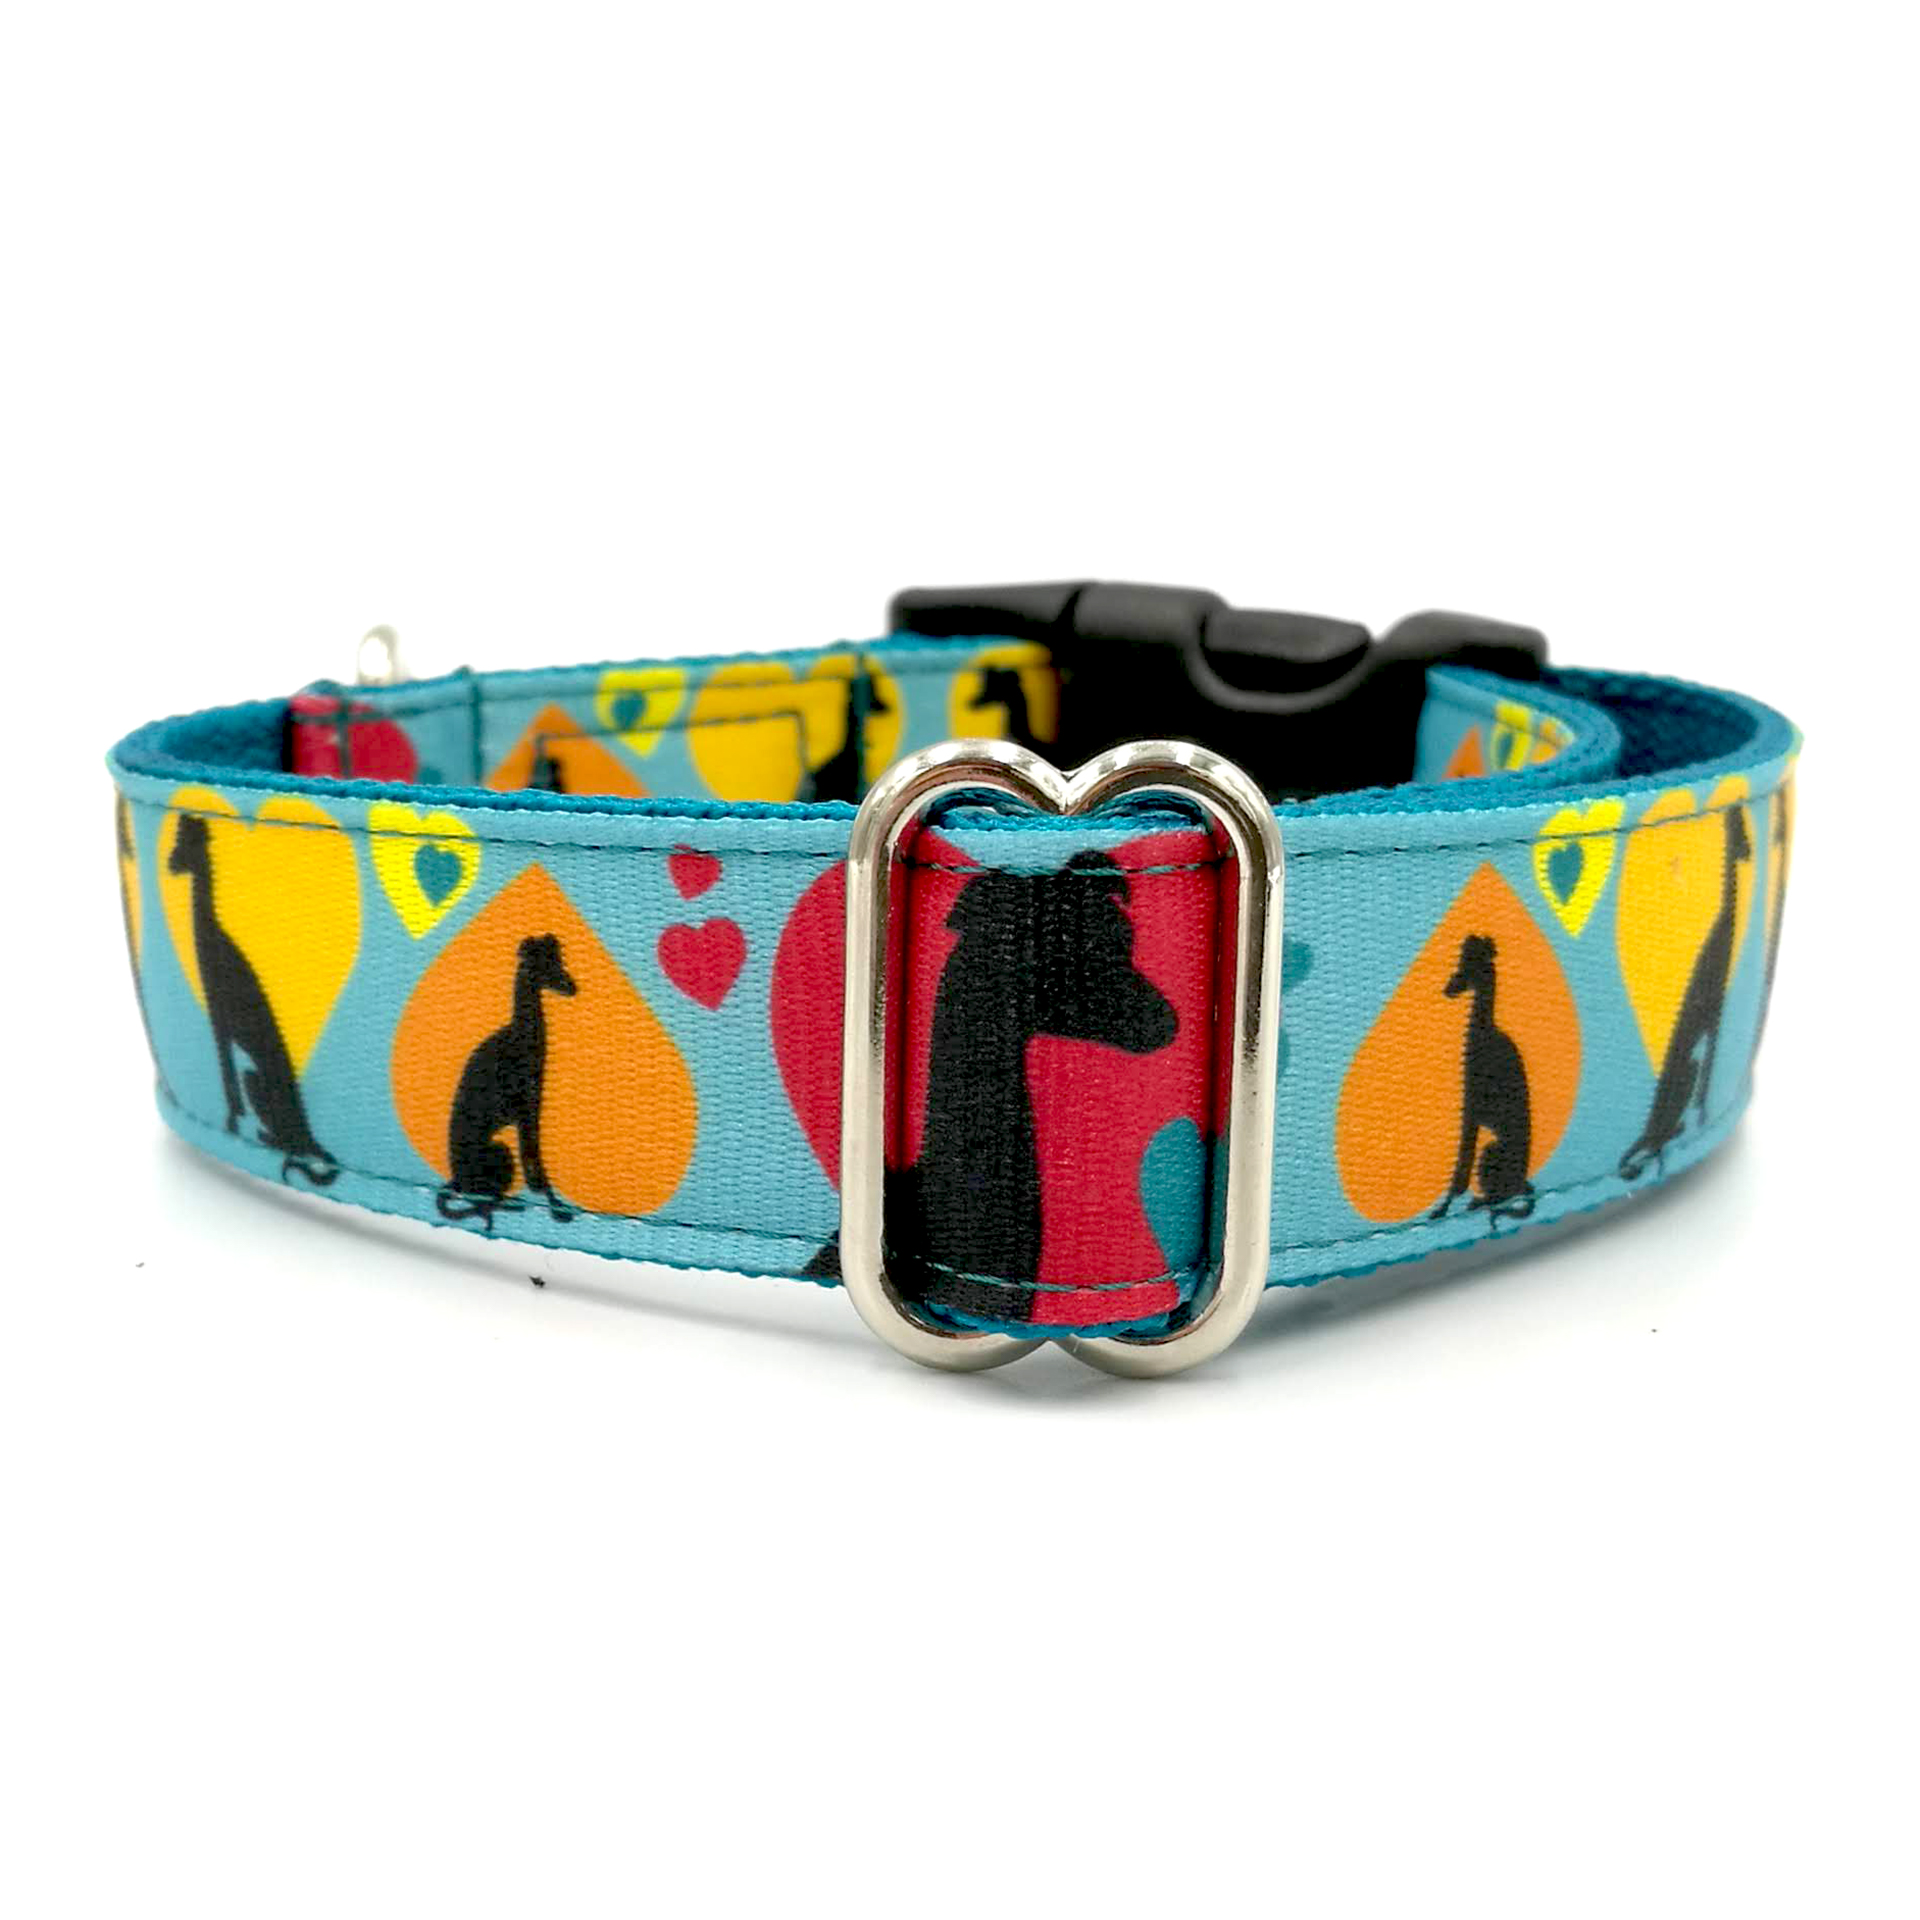 Whippet dog collar